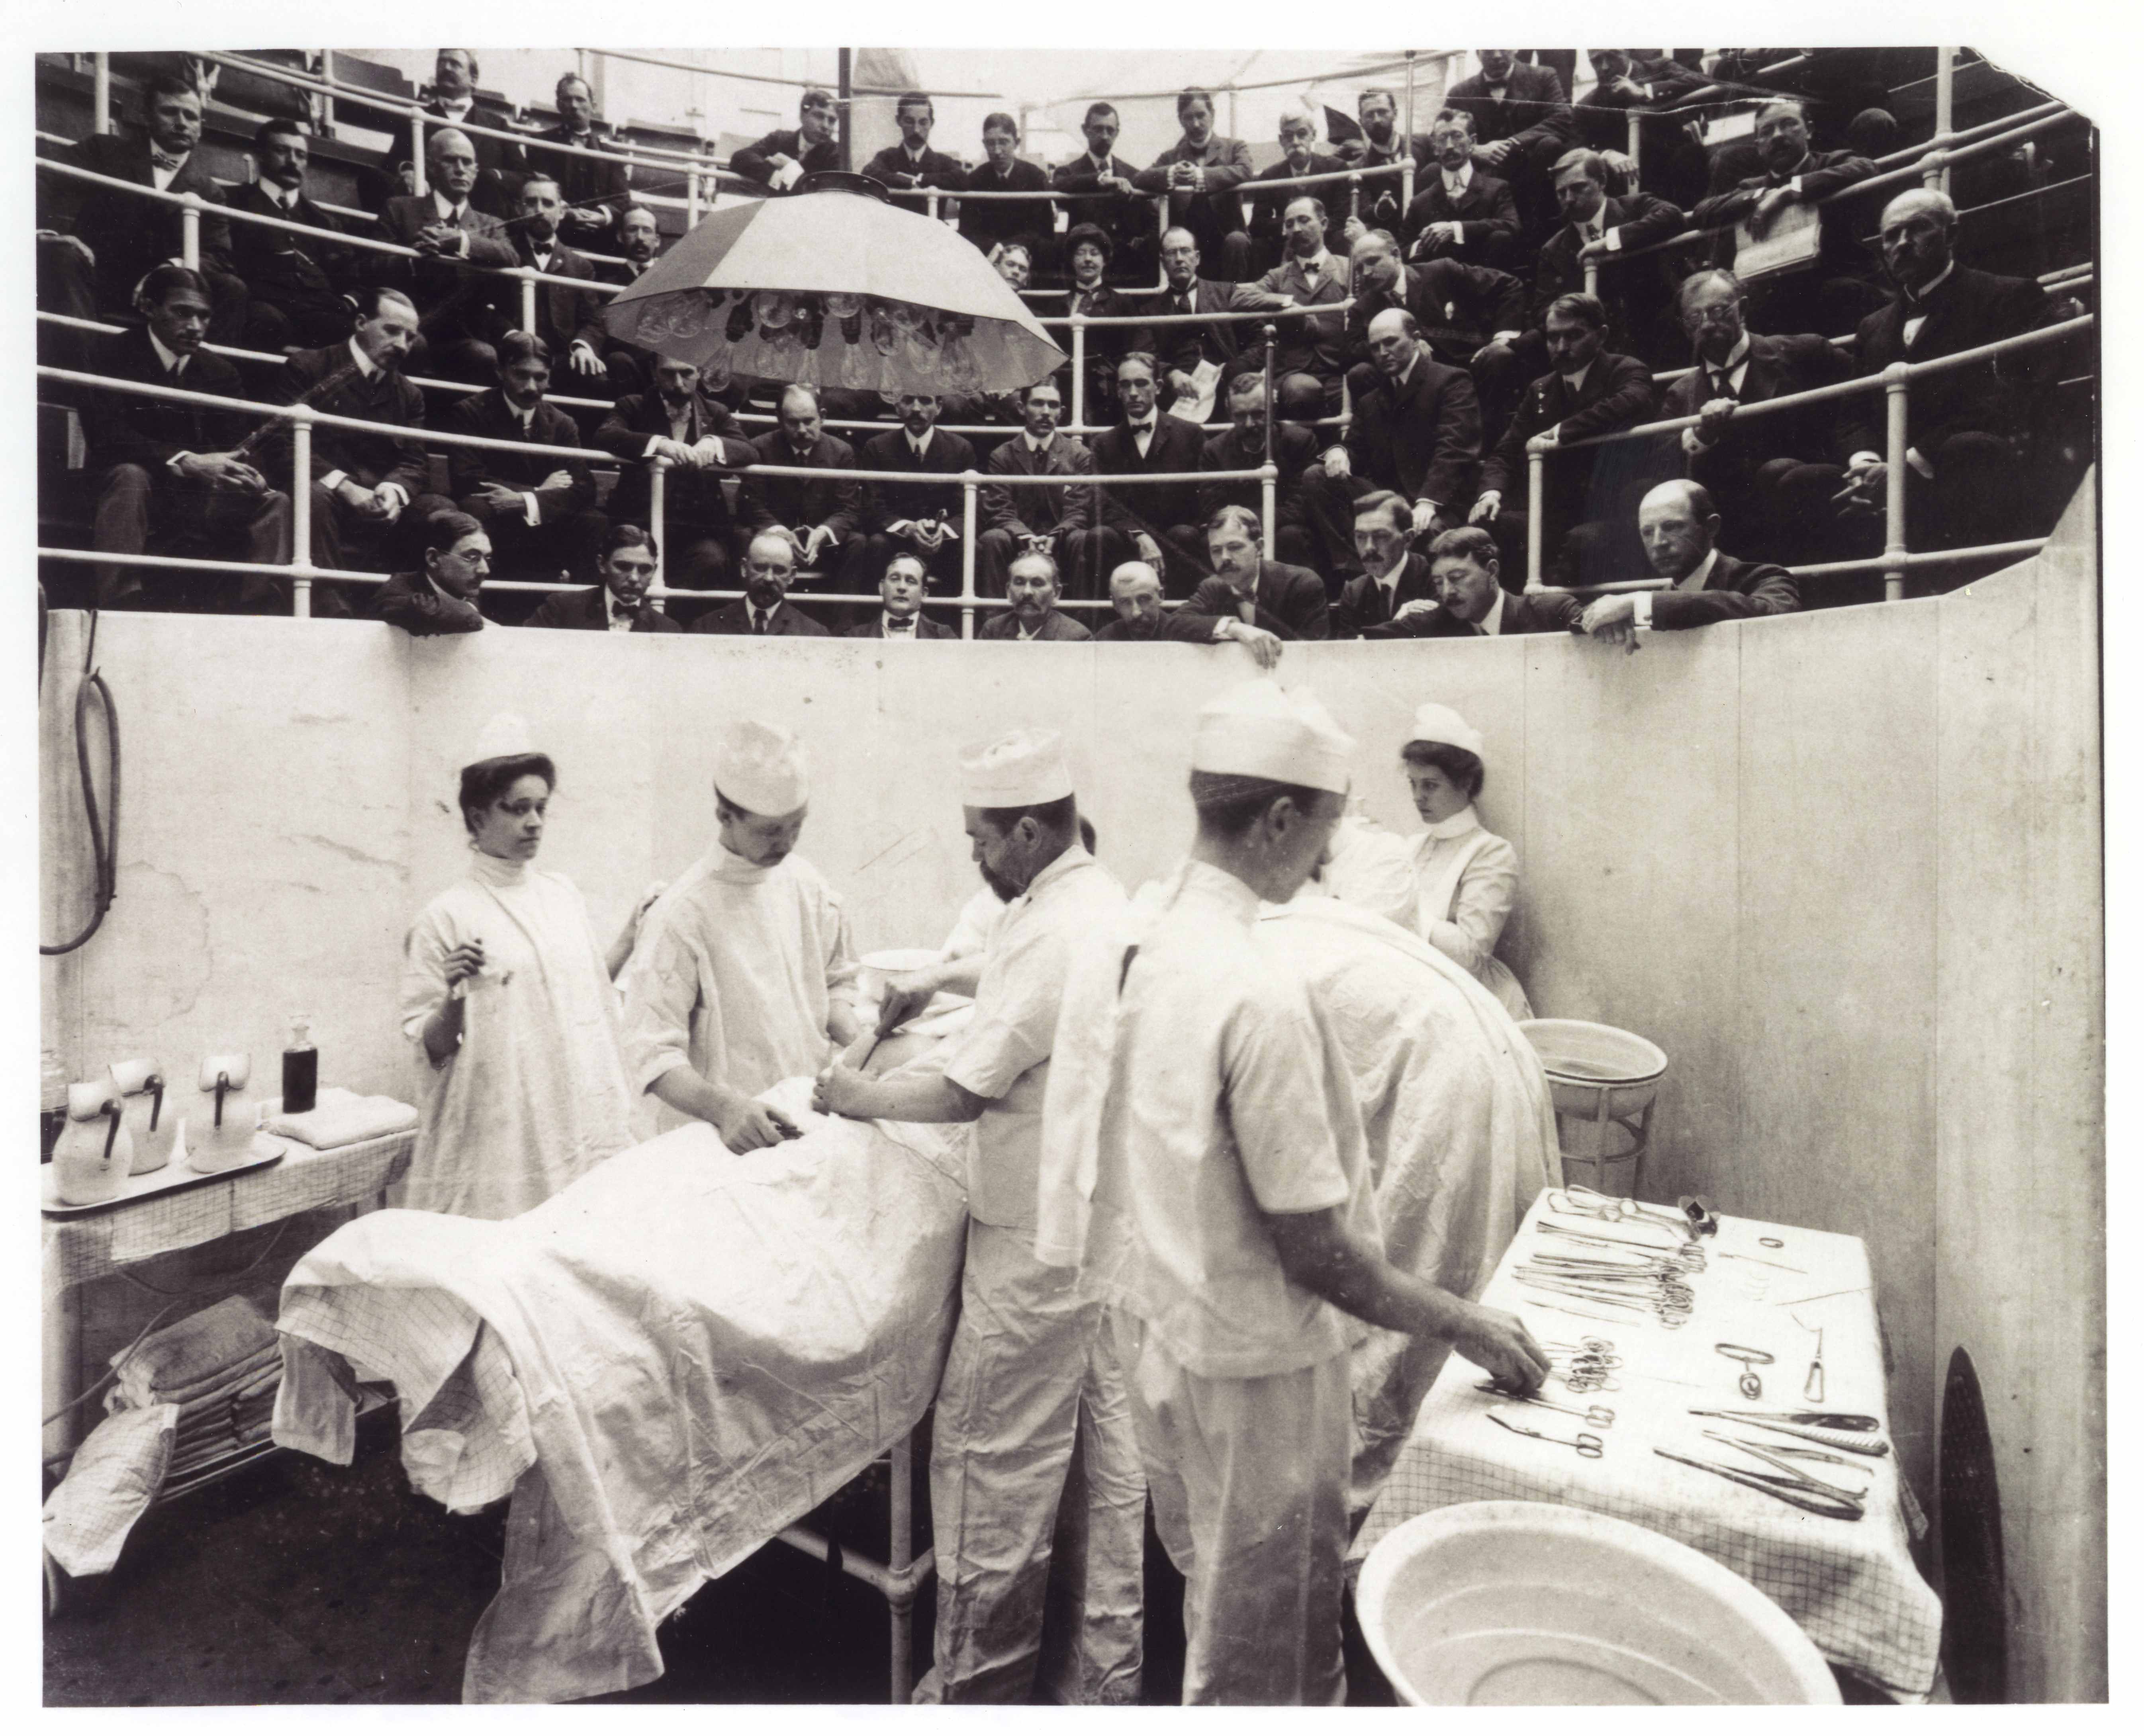 Yale University School of Medicine   A Directory of Yale Photographic  Collections